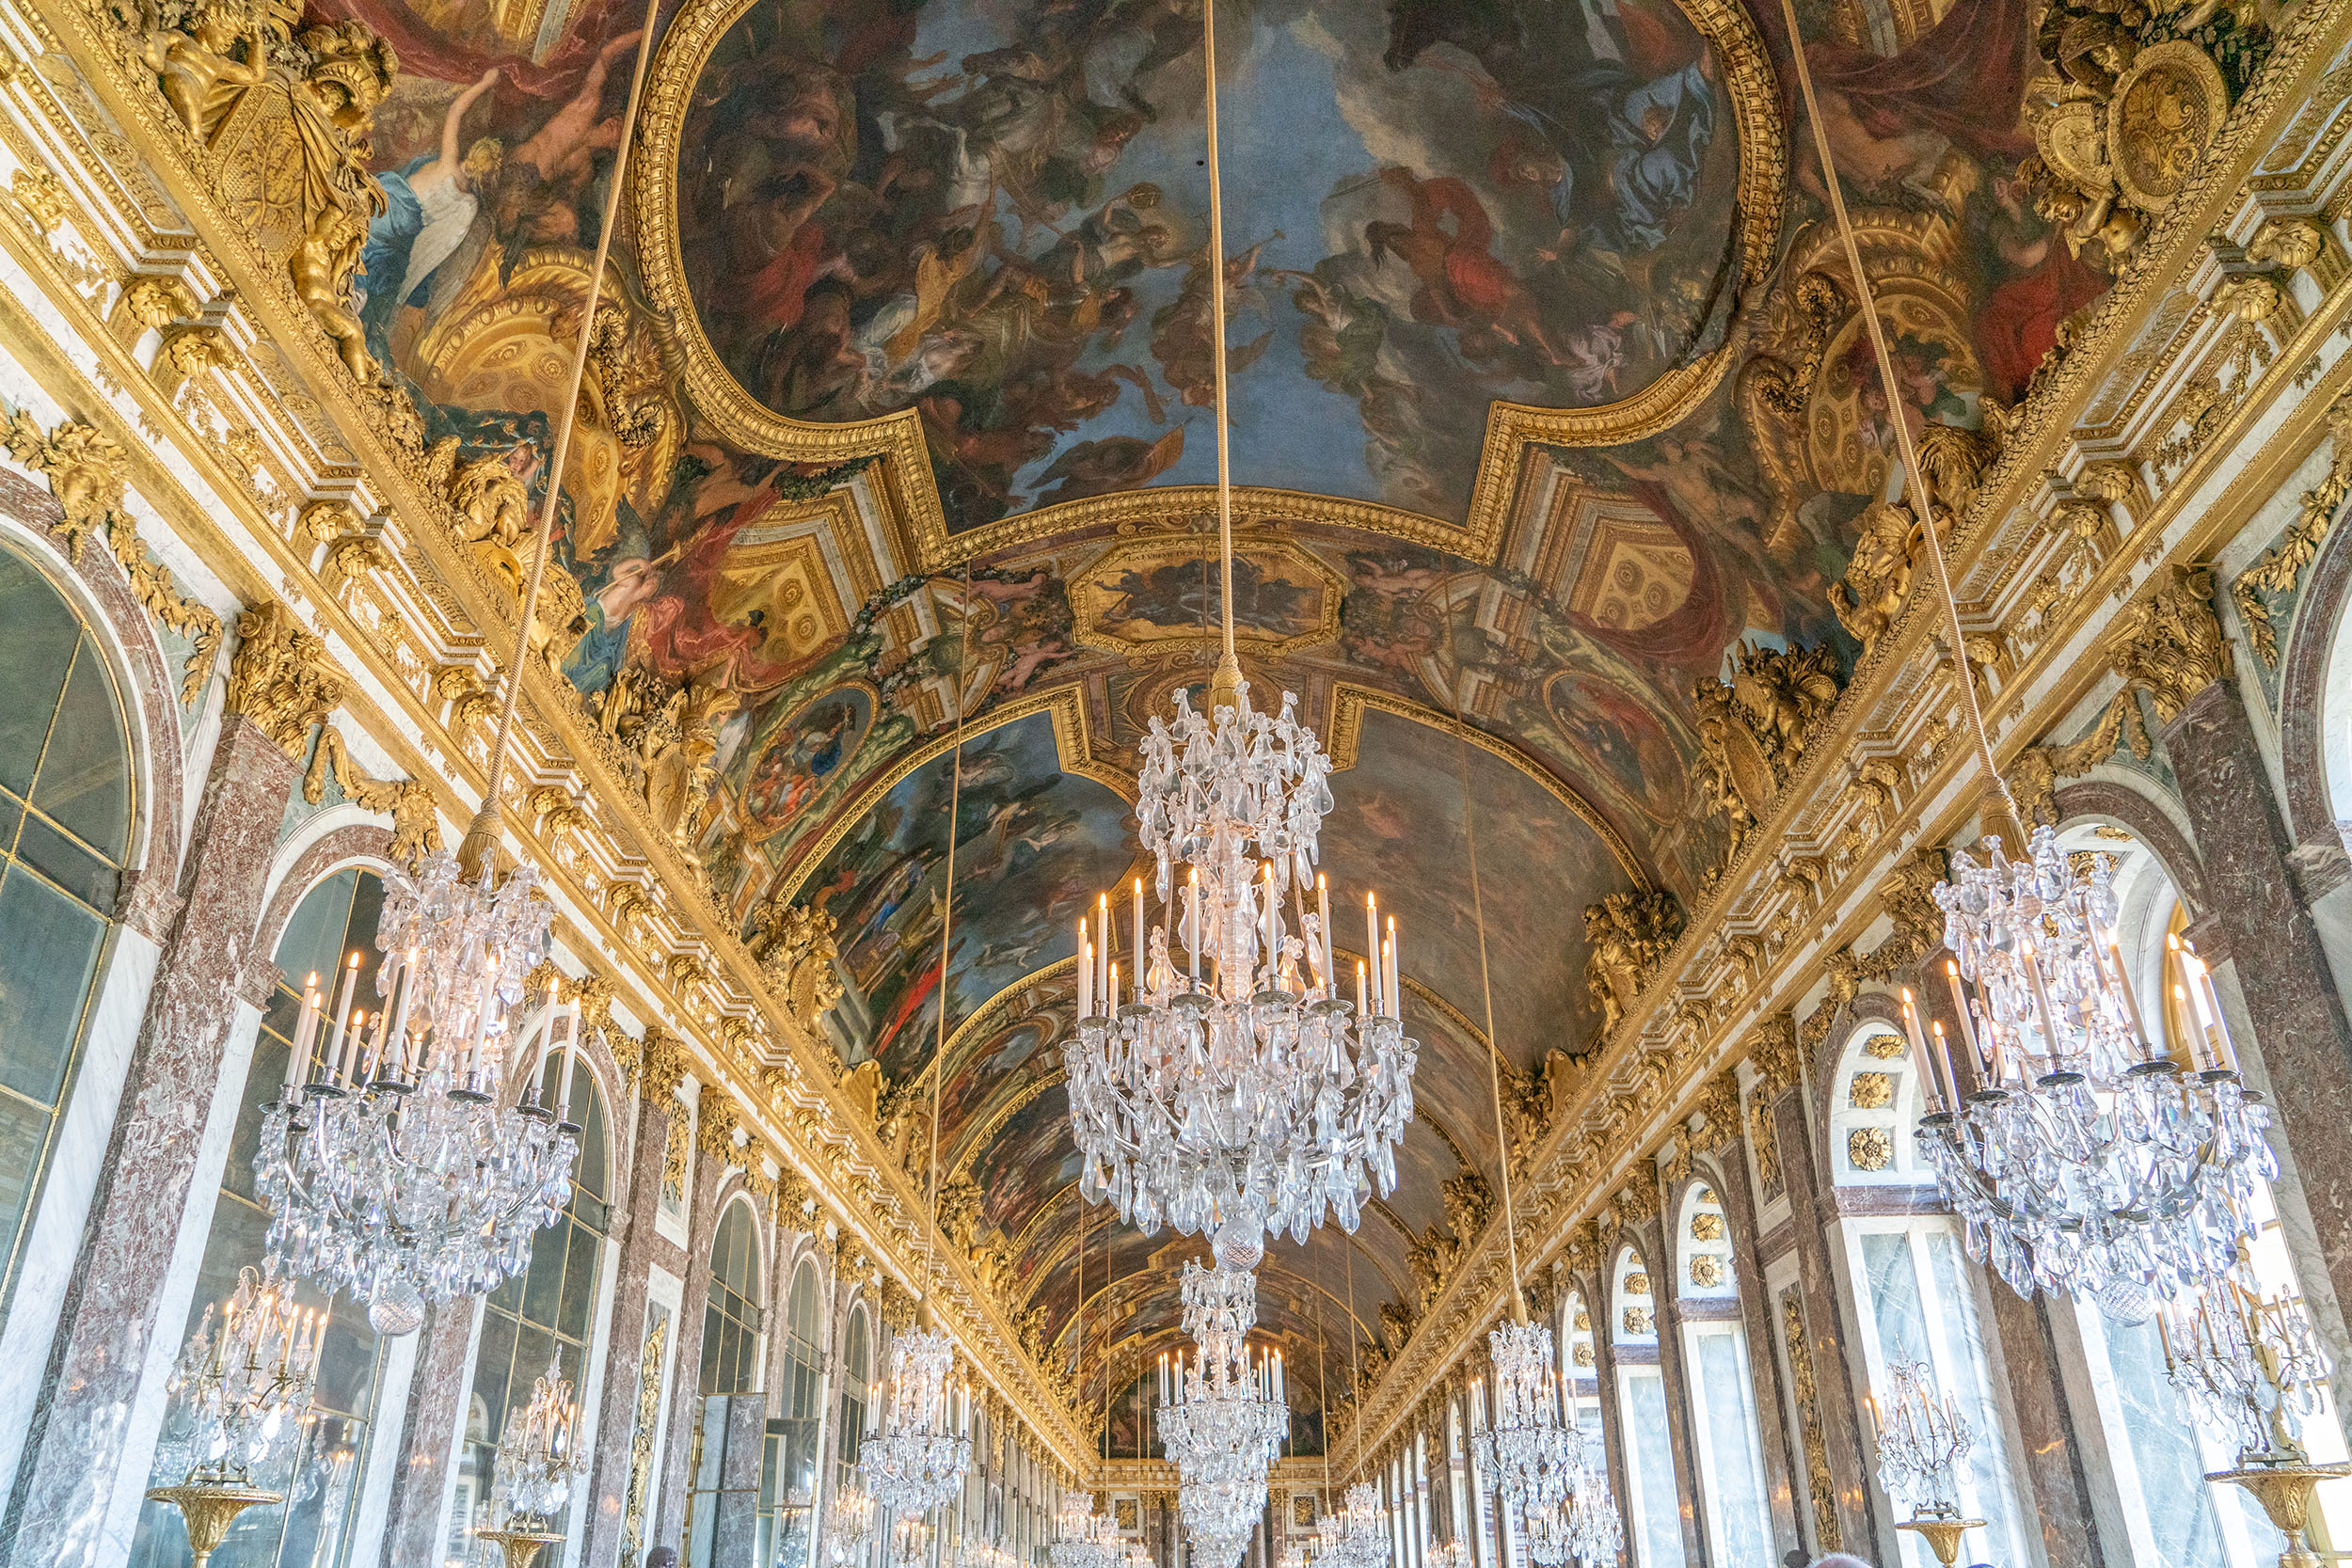 #versailles, #france, #louisxiv, #mansart, #architecture, #travel, #chandelier, #mirror, #hallofmirrors, #treaty, #goldleaf, #baroque